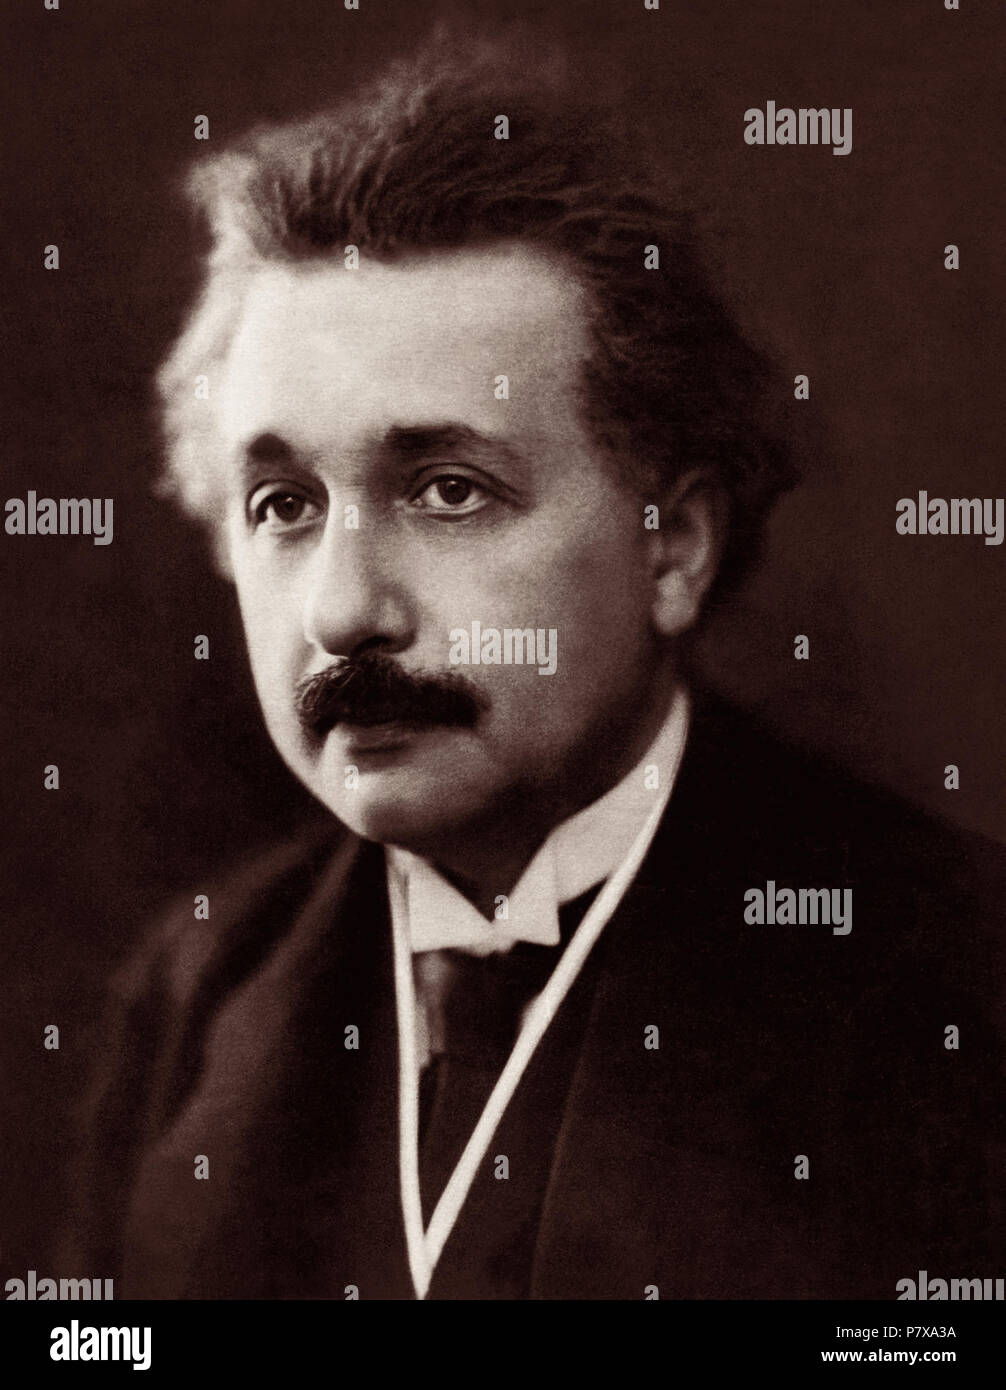 Albert Einstein portrait by Henri Manuel (likely from March 30, 1922 in Paris, France). Einstein won the Nobel Prize in Physics in 1921. - Stock Image